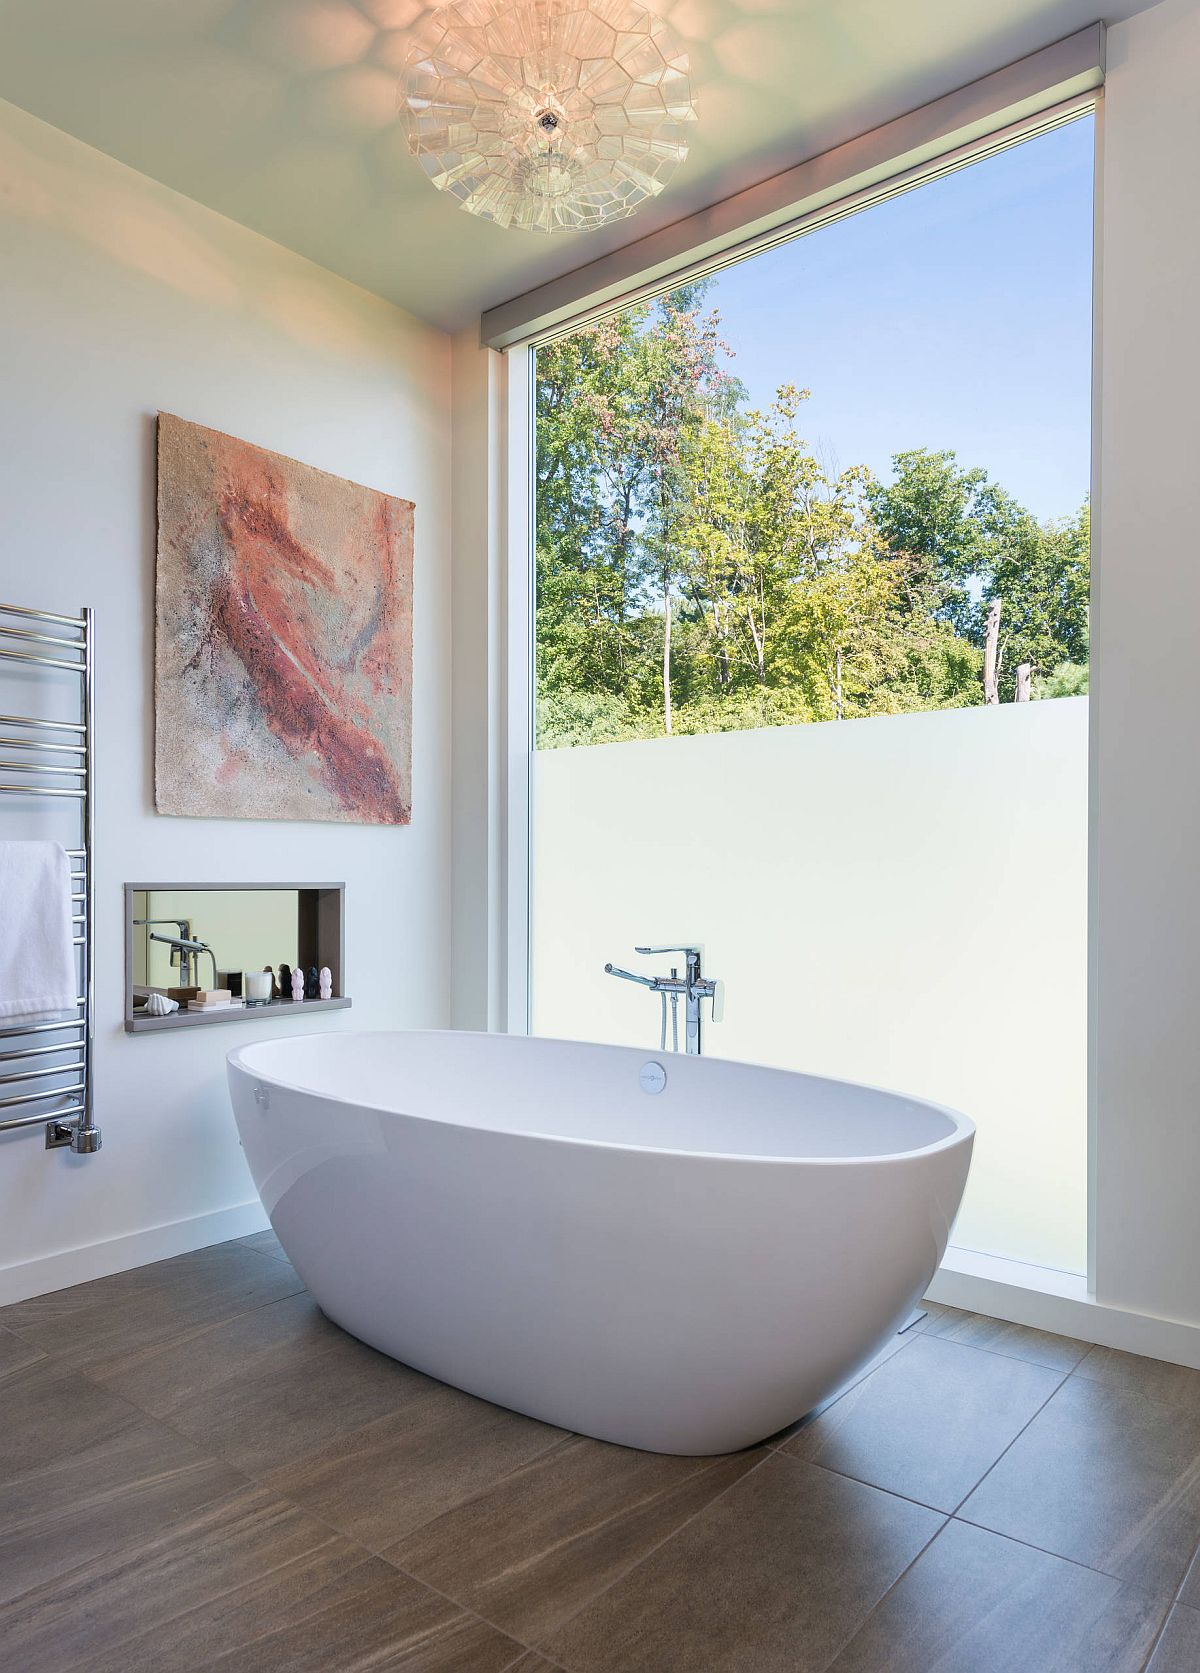 Style-of-the-wall-art-piece-perfectly-complements-that-of-his-contemporary-bathroom-45924